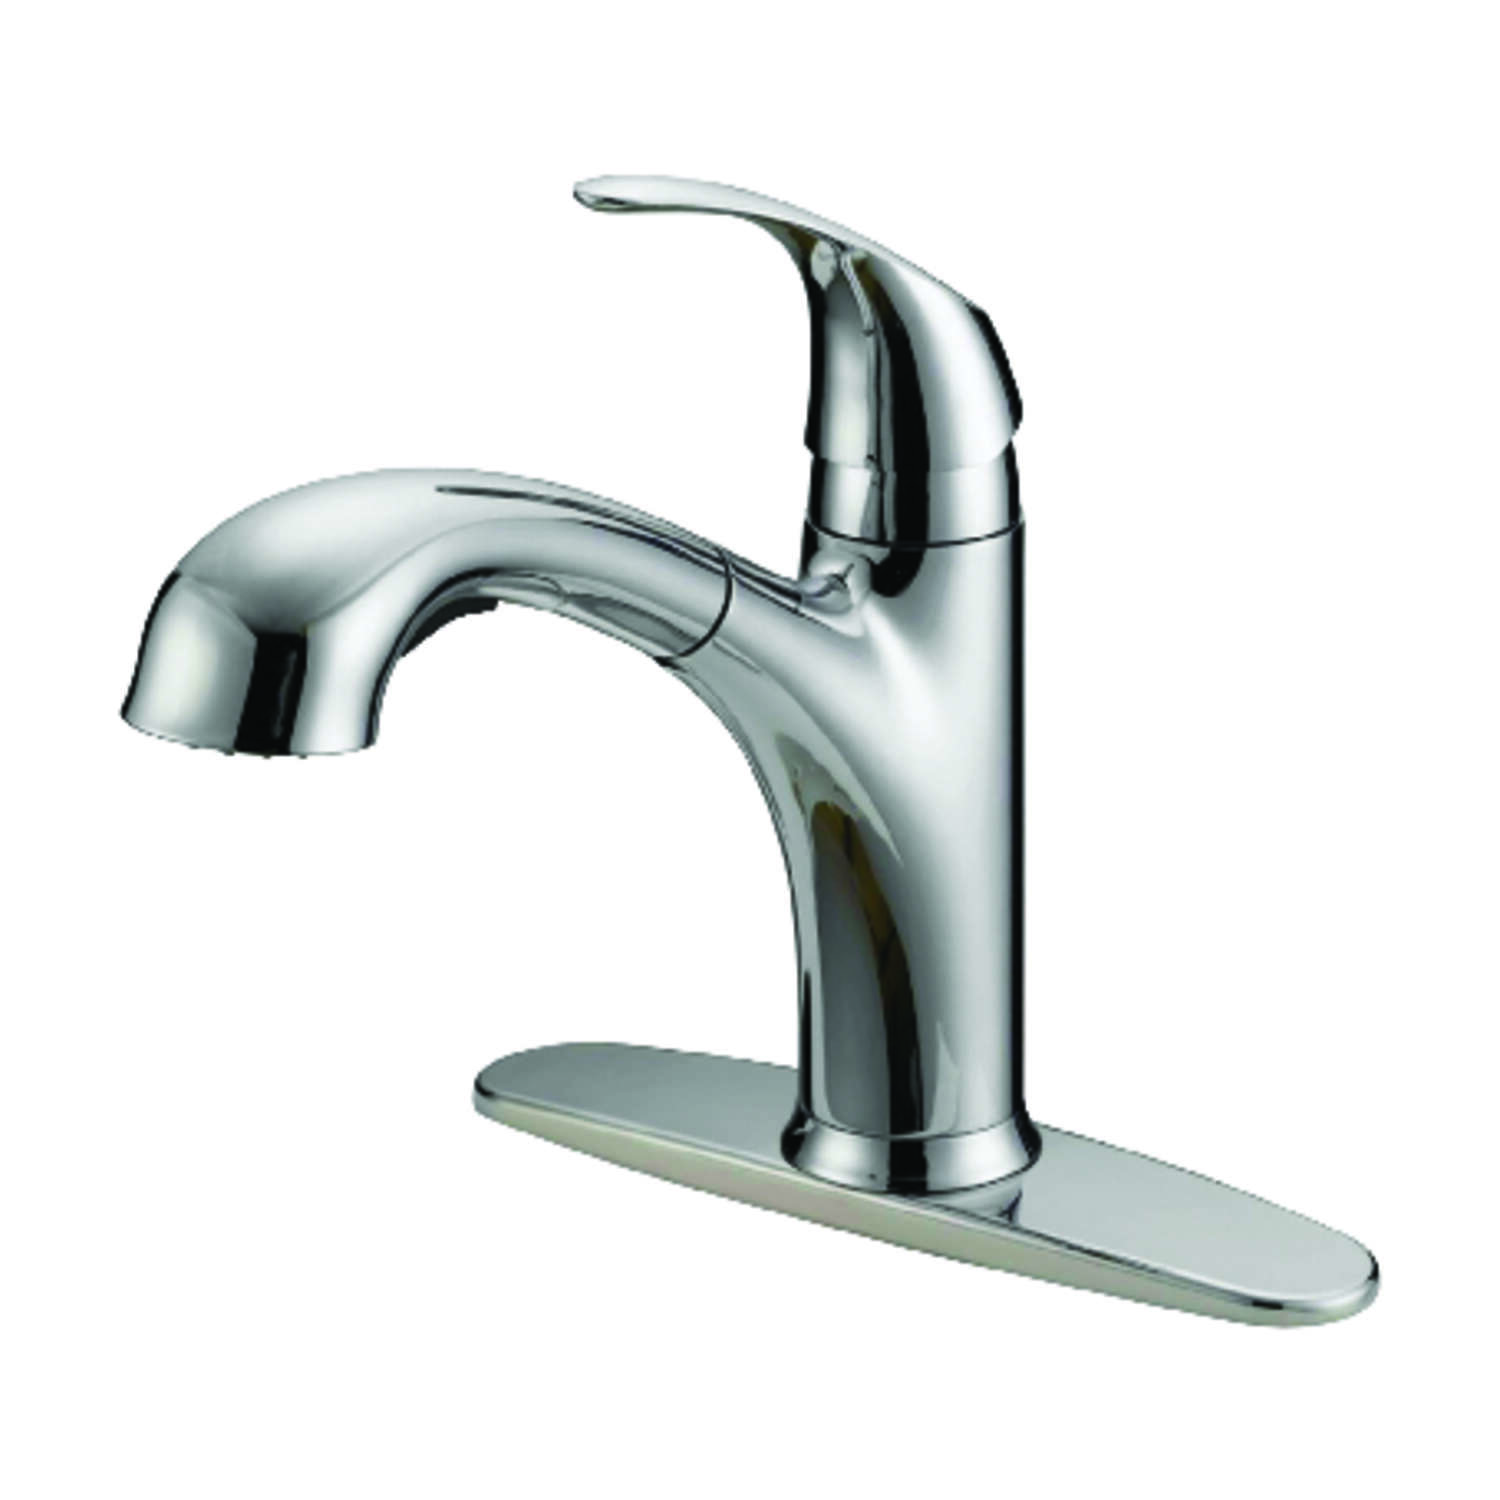 OakBrook Washerless Cartridge One Handle Chrome Kitchen Faucet Ace - Ace hardware kitchen faucets